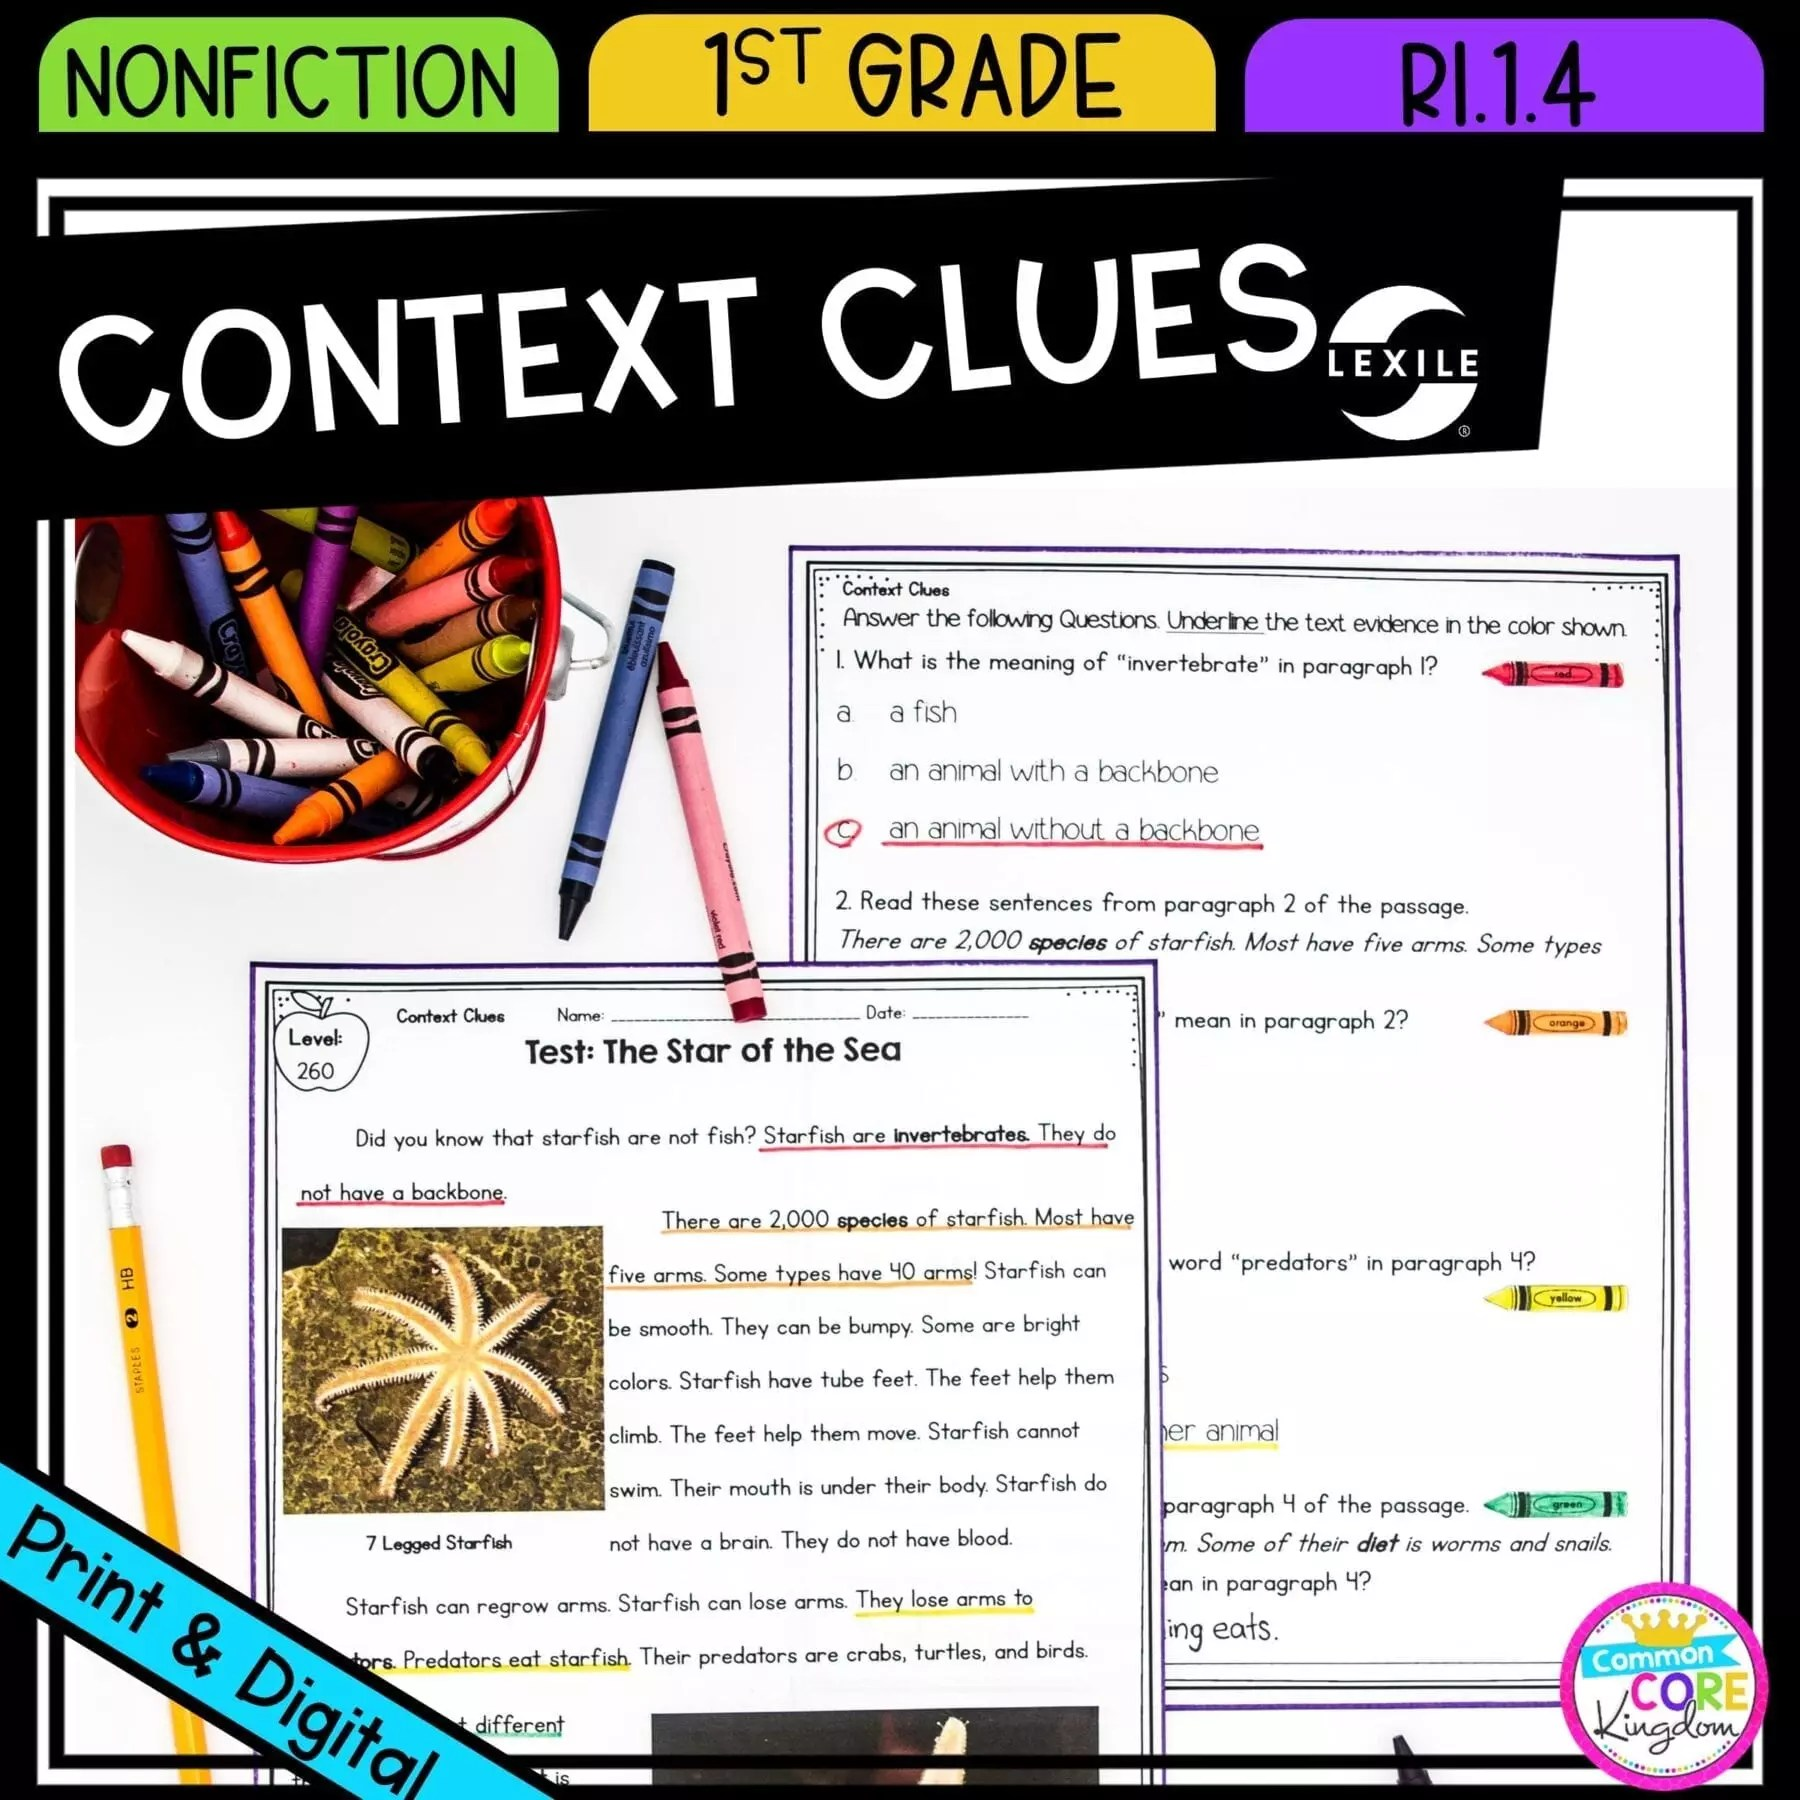 Context Clues in Nonfiction - 1st Grade - RI.1.4 Printable \u0026 Digital Google  Slides Distance Learning   Common Core Kingdom [ 1800 x 1800 Pixel ]